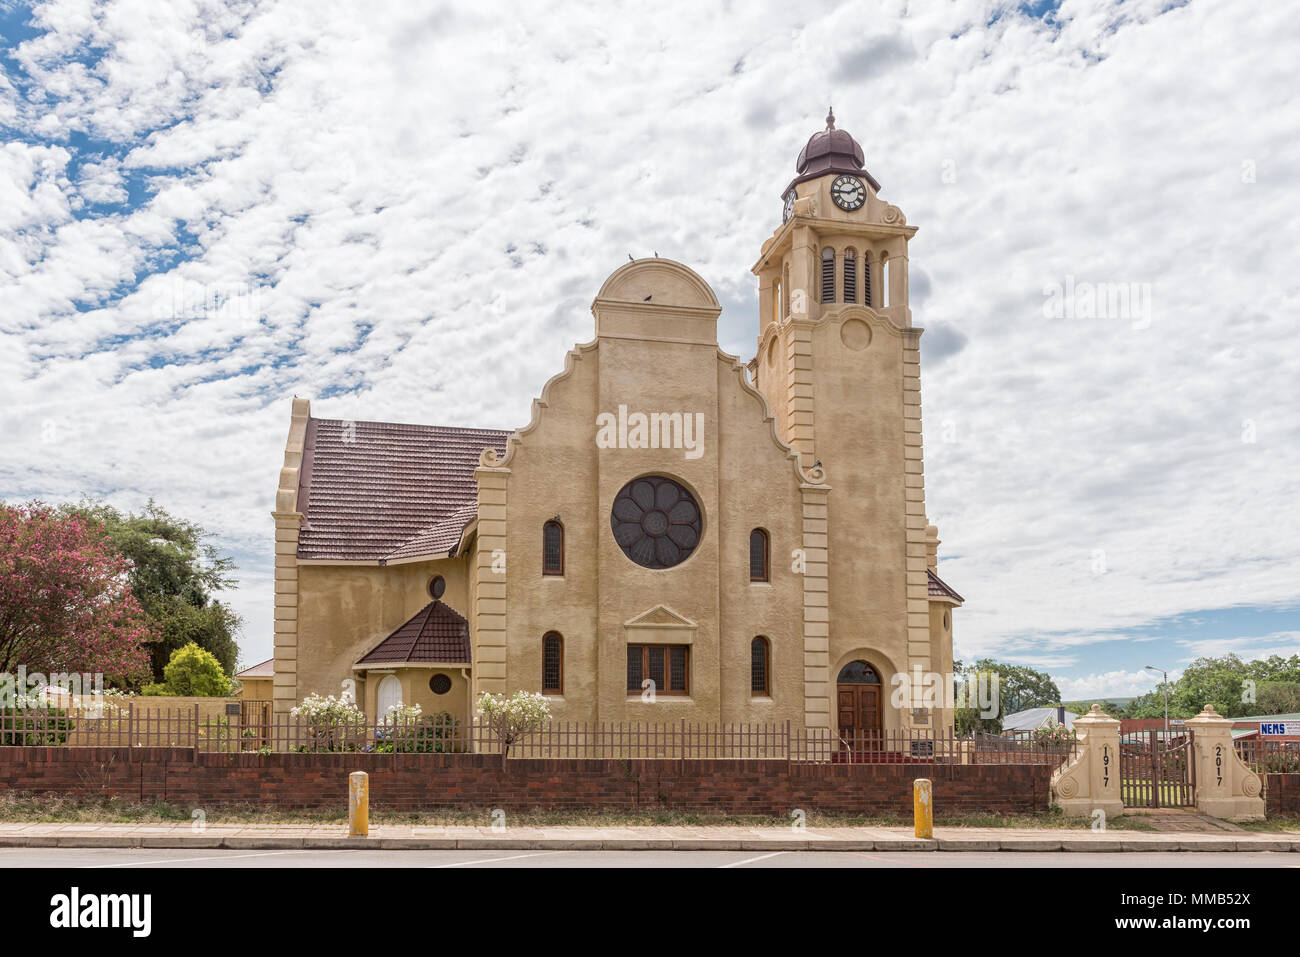 DUNDEE, SOUTH AFRICA - MARCH 21, 2018: The Dutch Reformed Church, in Dundee in the Kwazulu-Natal Province. - Stock Image